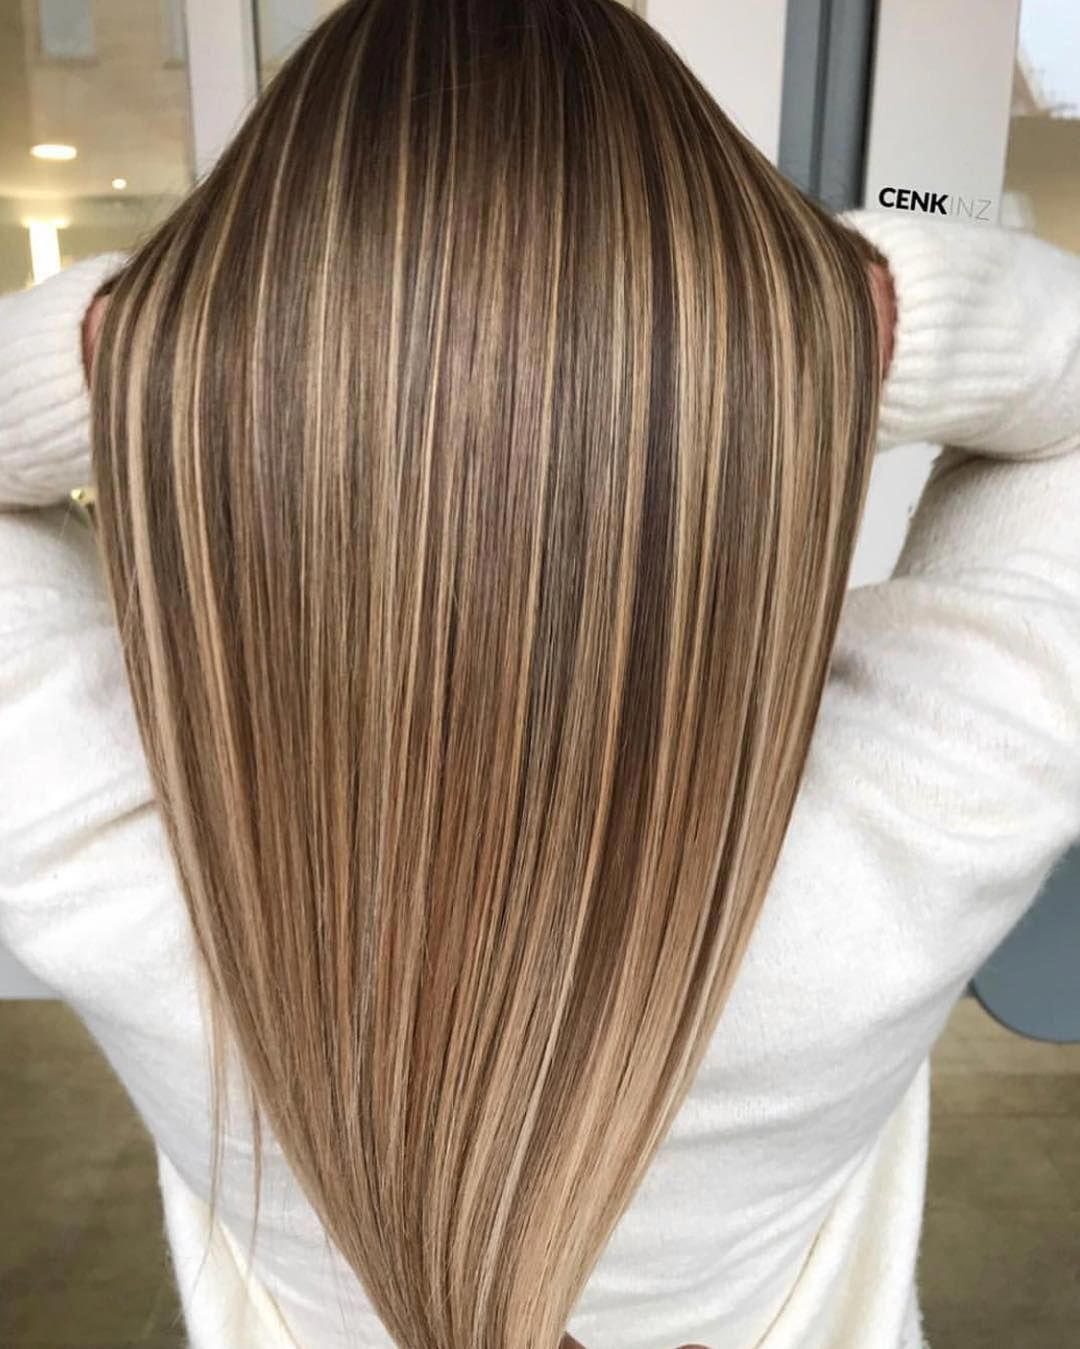 Pin By Samantha On Hair In 2020 With Images Brown Hair Balayage Ombre Hair Blonde Ombre Hair Color